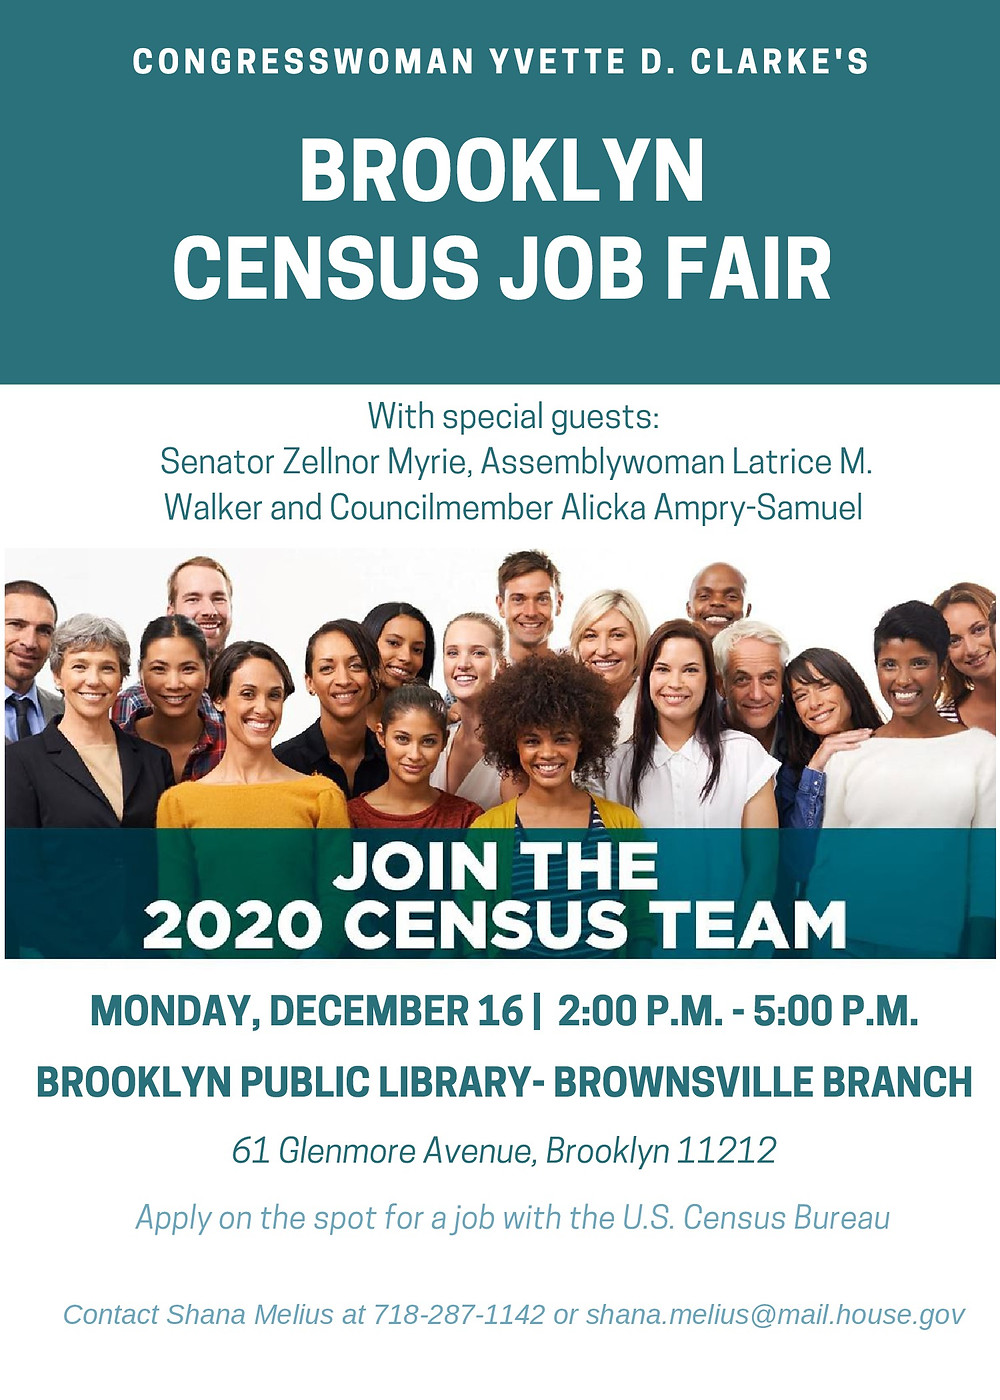 Brooklyn 2020 Census Job Fair 2019 Yvette Clarke Zellnor Myrie Latrice Walker Alicka Ampry Samuel Brownsville